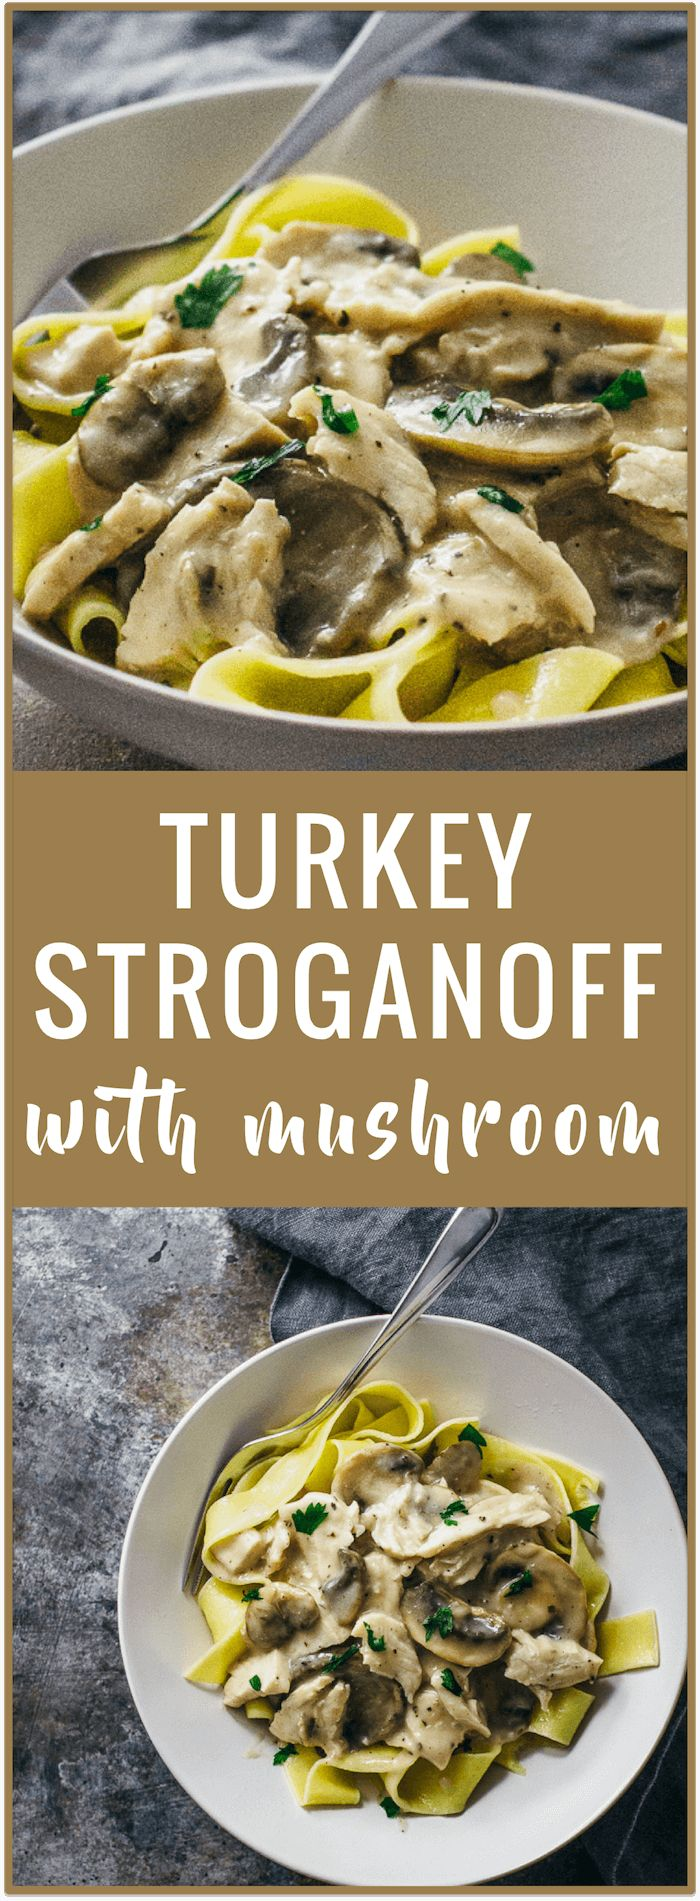 Turkey stroganoff with mushroom - Try this simple recipe for turkey stroganoff -- shredded turkey meat with sliced mushrooms in a creamy sauce served over egg noodles.